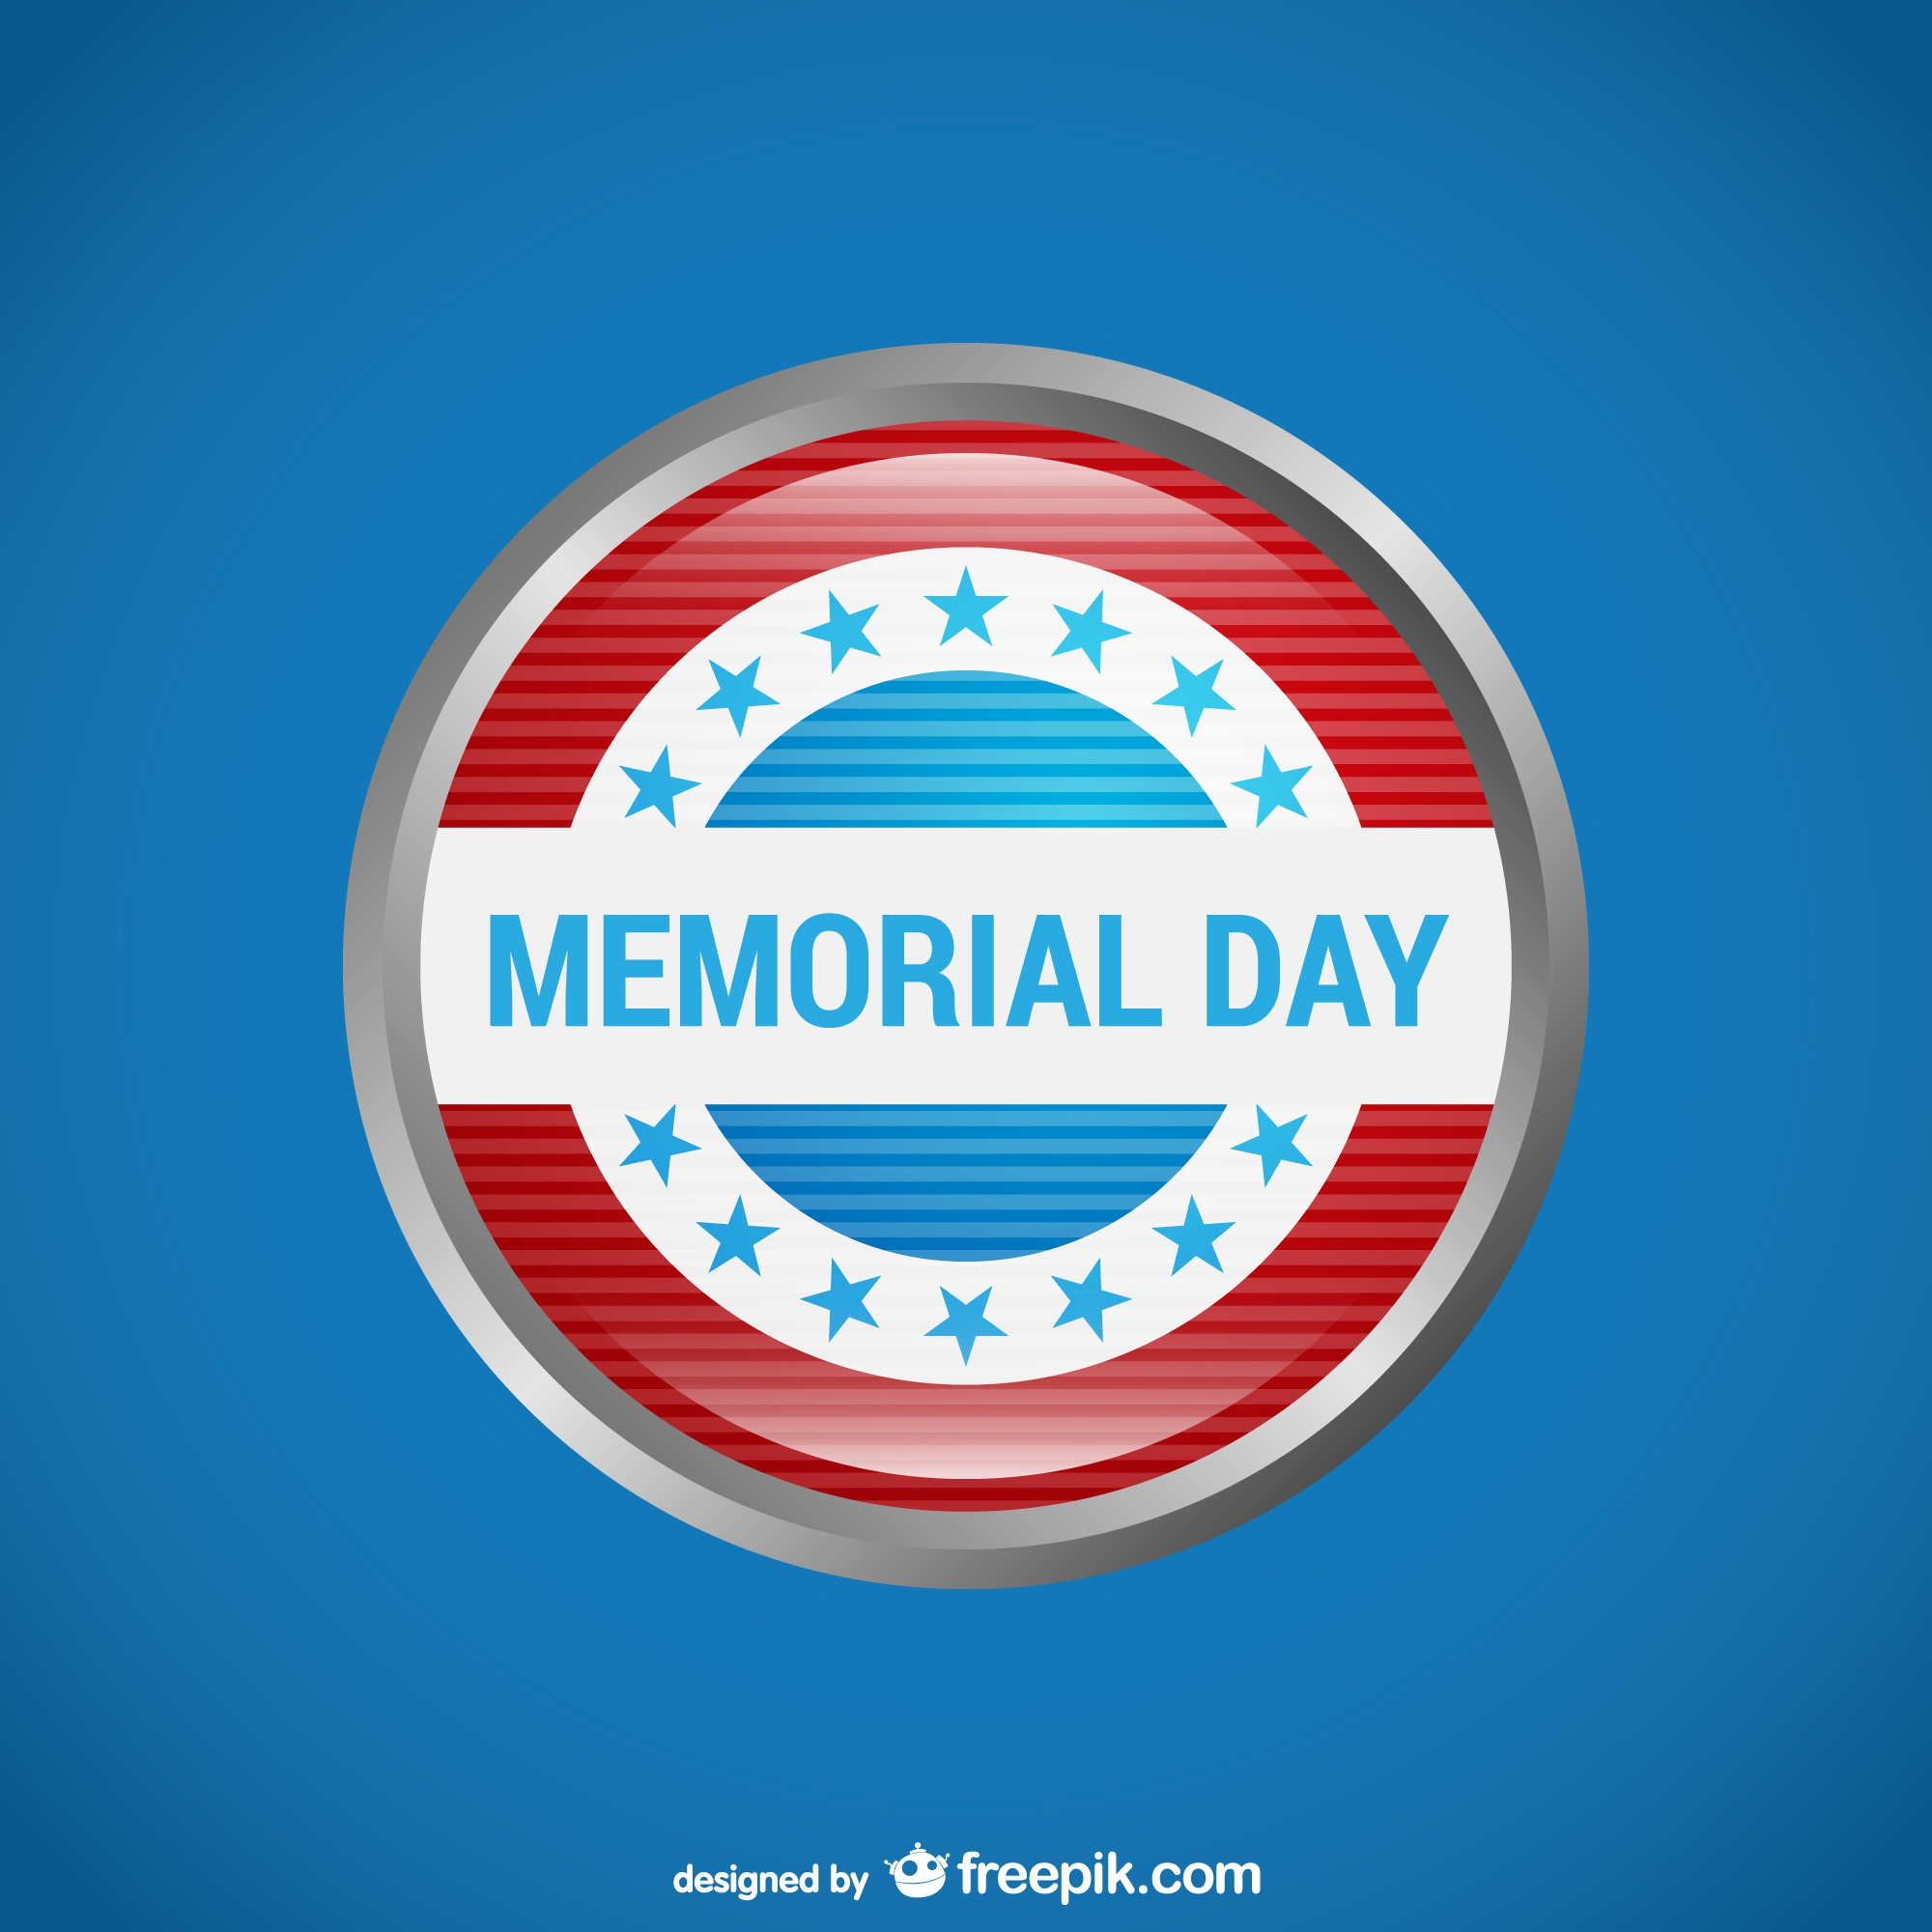 Memorial Day with blue background design